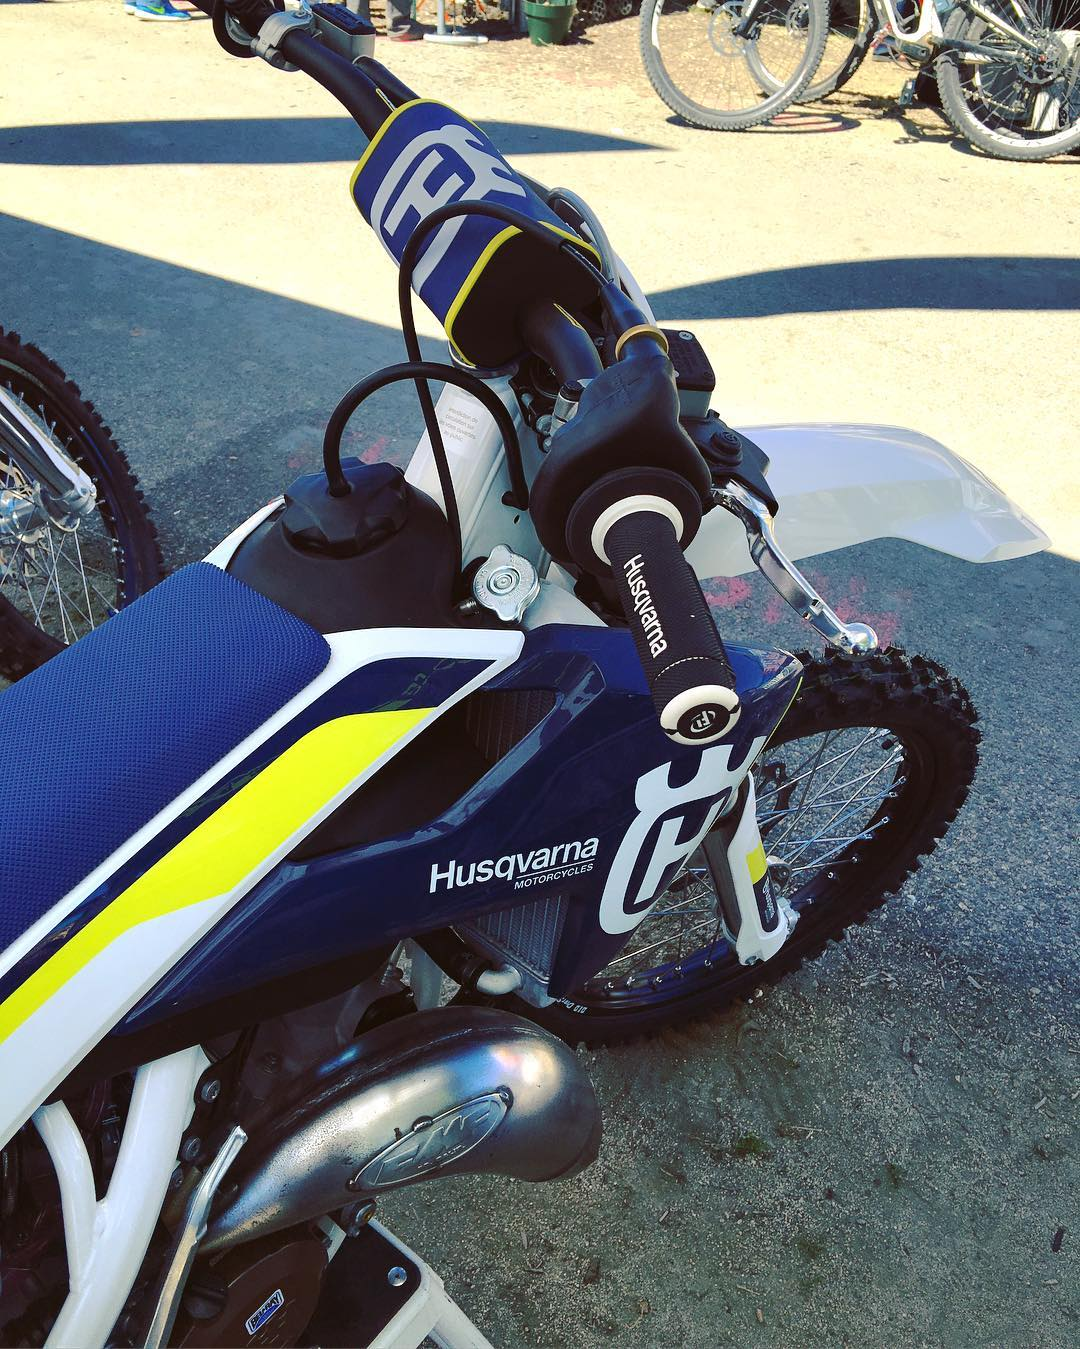 Some #Husqvarna dirt bikes at #seaotterclassic amongst the bicycles, had a good chat to the guys there. Nice to meet you  @blueberry719 #de_portfolio #tc125 #moto